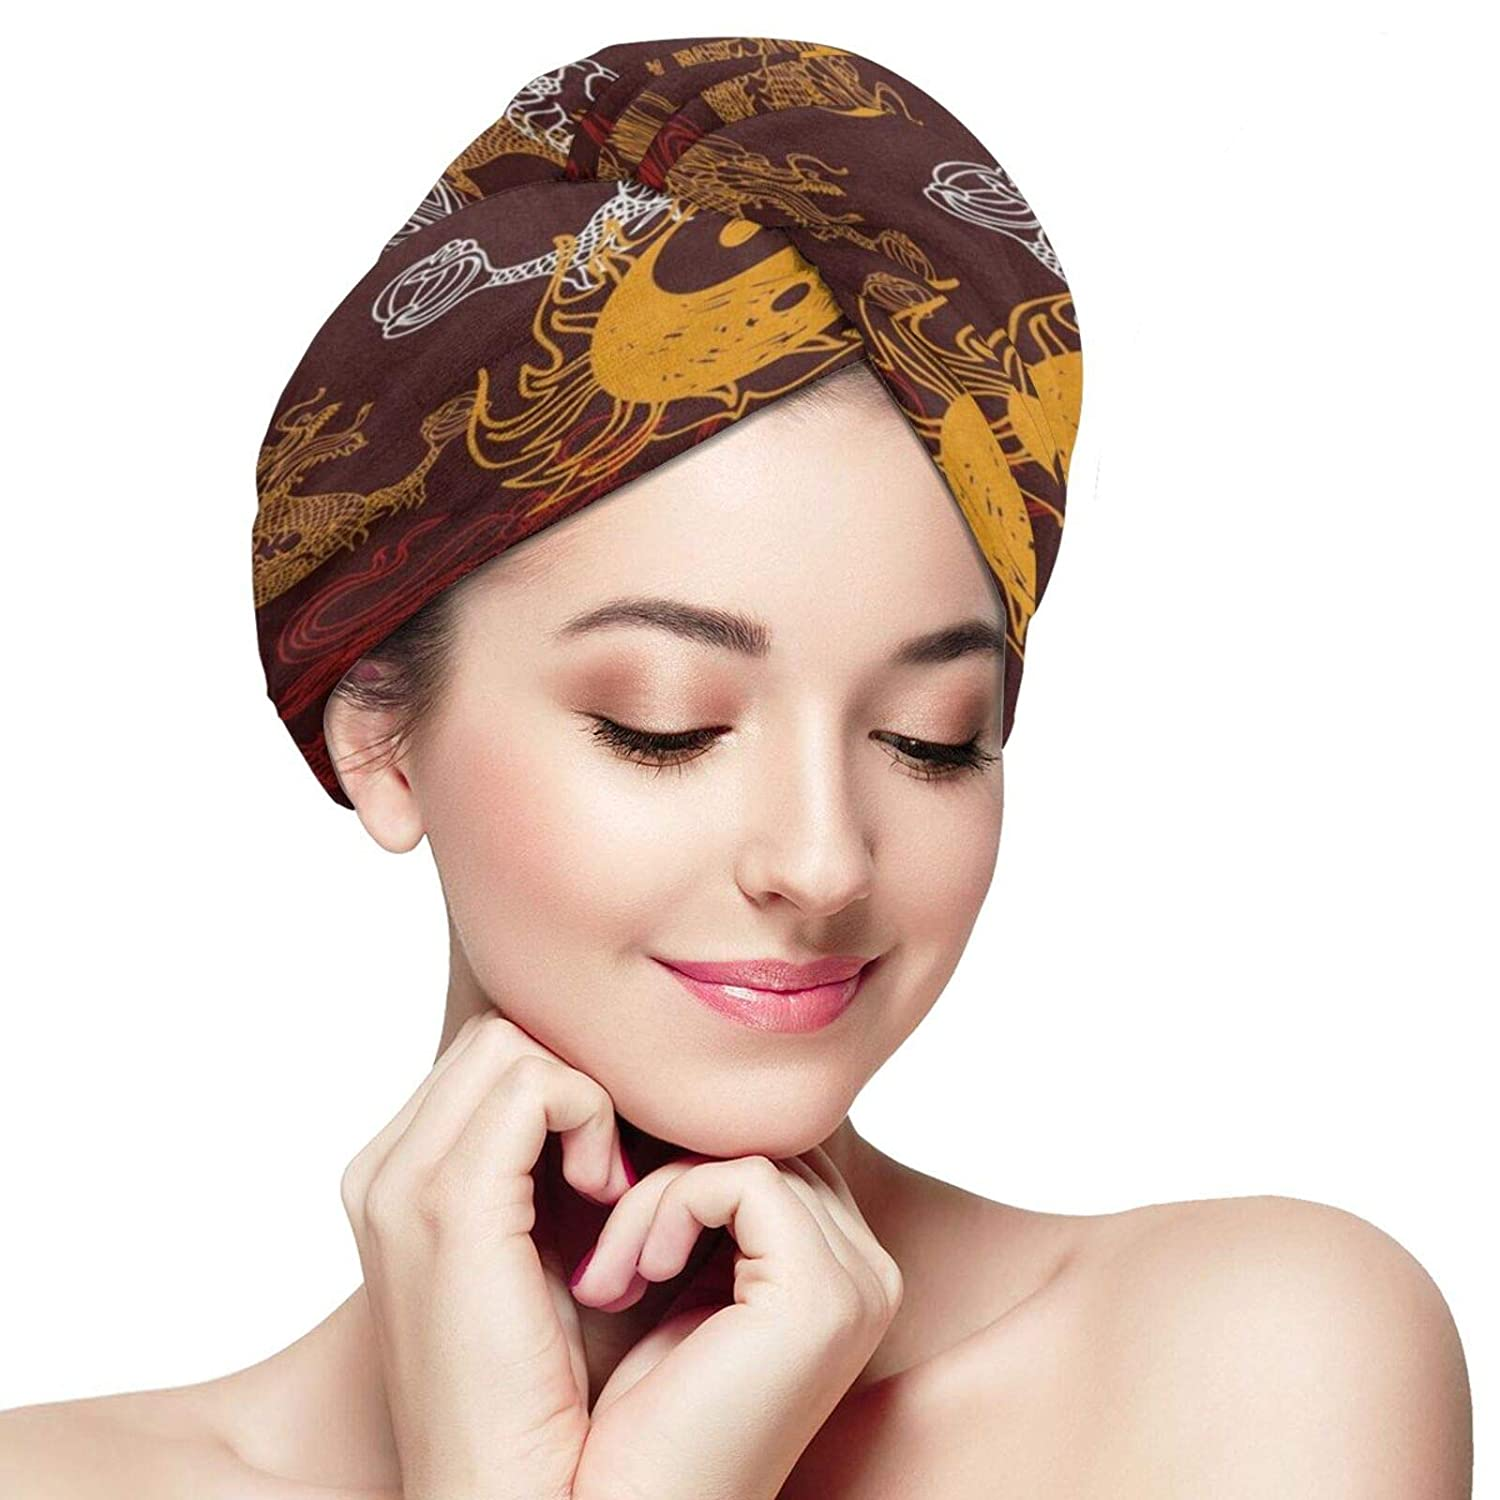 Hair Towel Wrap Chinese Stylish Dragon Yin Yang Microfiber Hair Drying Towels Head Wraps Twist Turban Quick Dry Hair Cap for Women Long, Curly, Thick Wet Hair Sauna Accessories